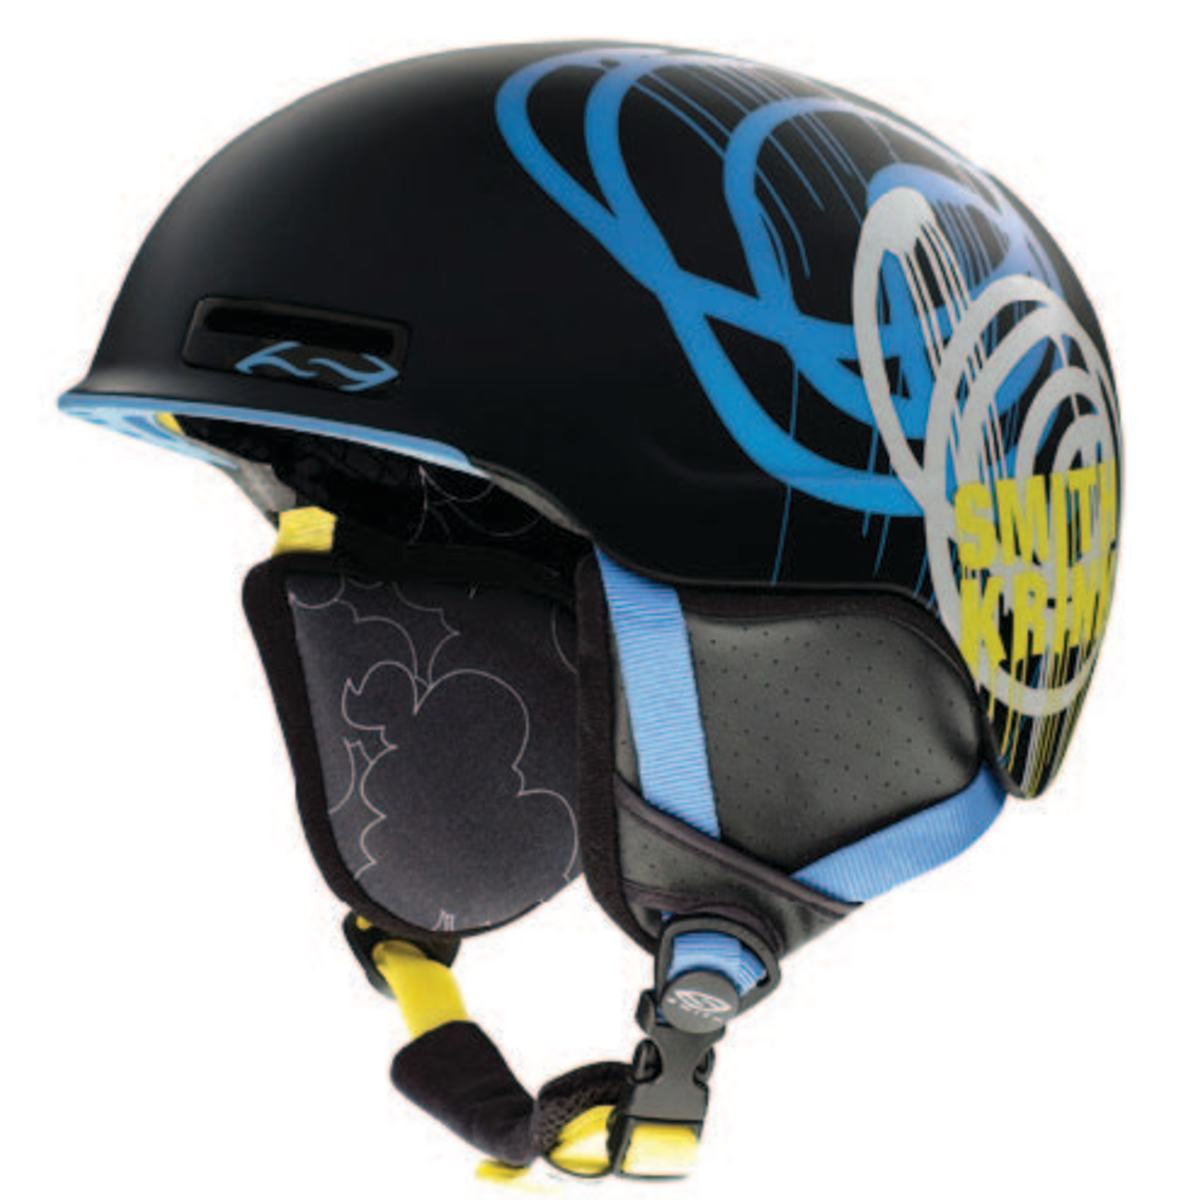 Smith x KRINK - Smith EXCLUSIVO Collection - Maze Helmet with Swirls